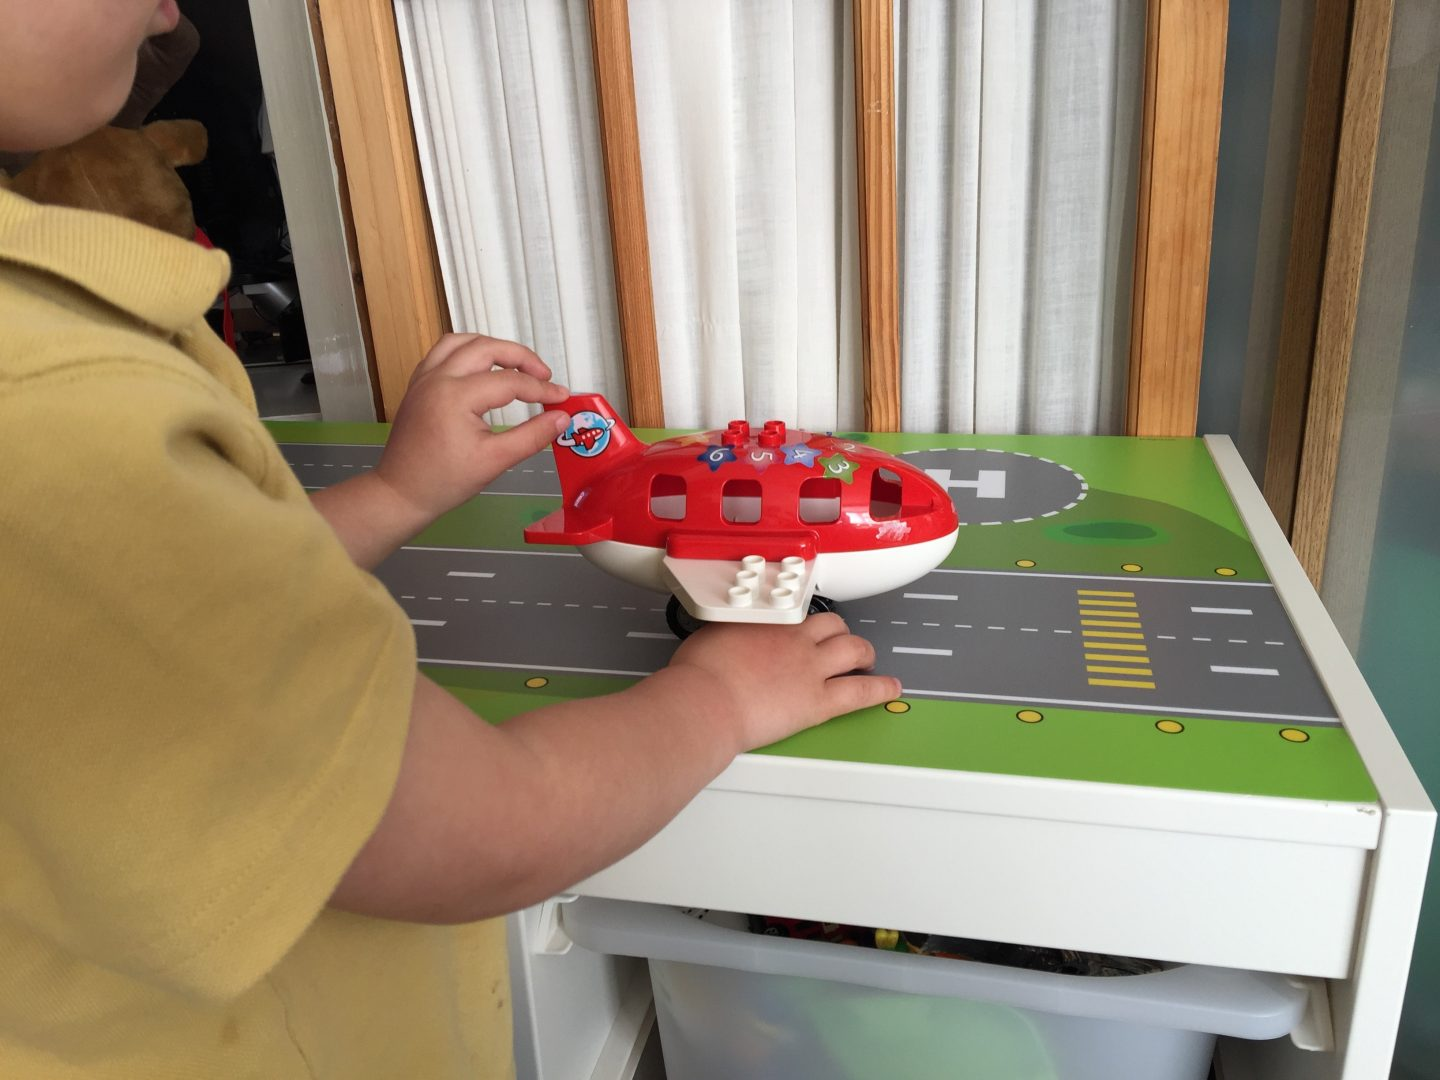 Transform IKEA furniture into imagination stations with Limmaland – REVIEW